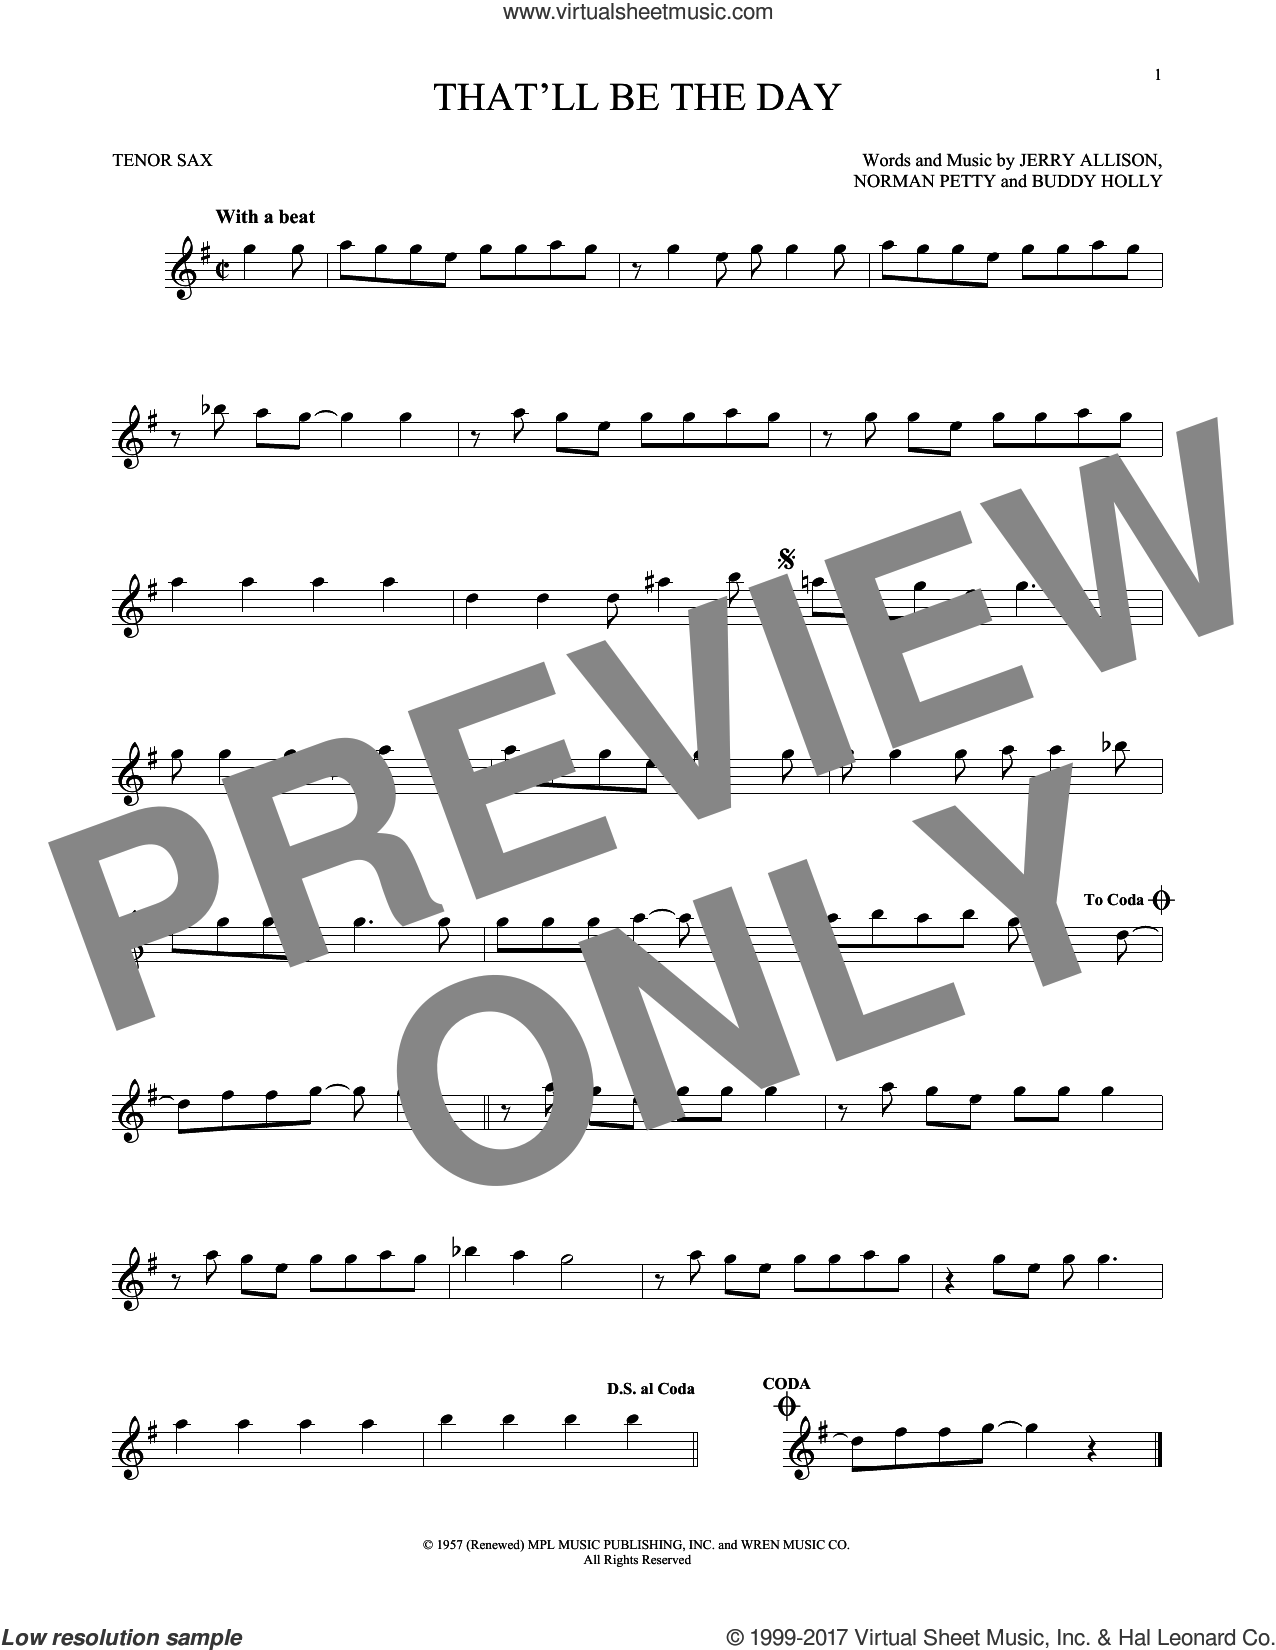 That'll Be The Day sheet music for tenor saxophone solo by The Crickets, Buddy Holly, Jerry Allison and Norman Petty, intermediate skill level